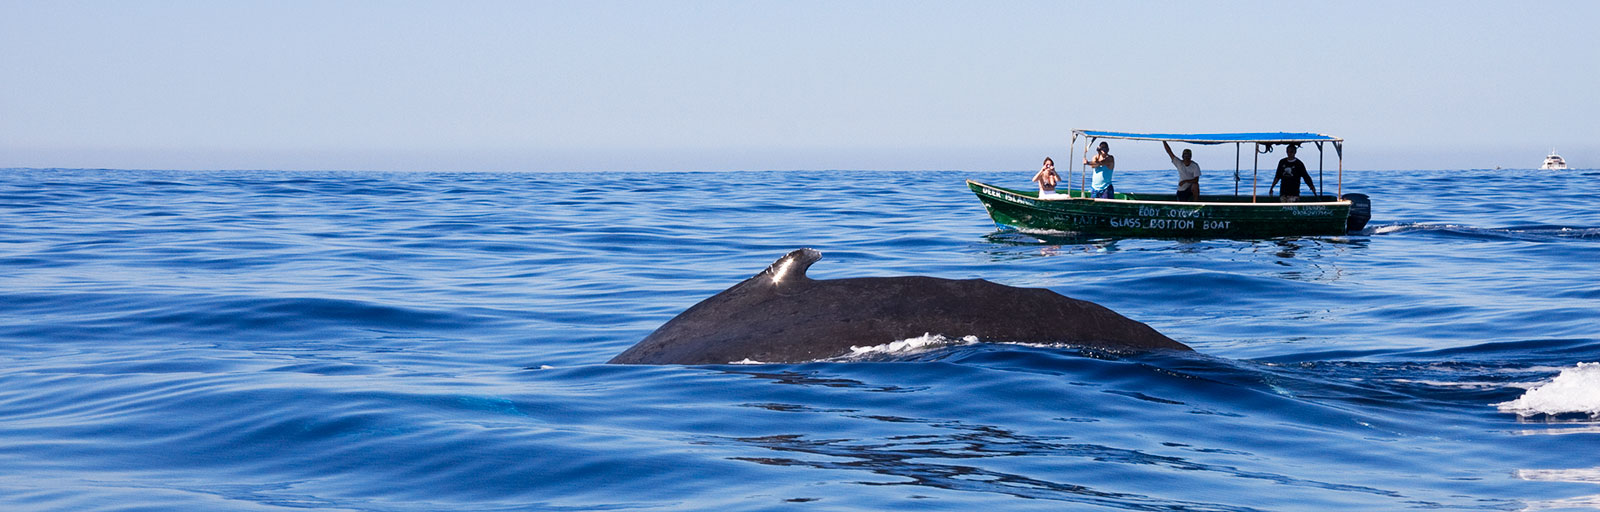 Whale Watching & Yoga Retreat in Mexico: Humpback Whale in Cabo Bay